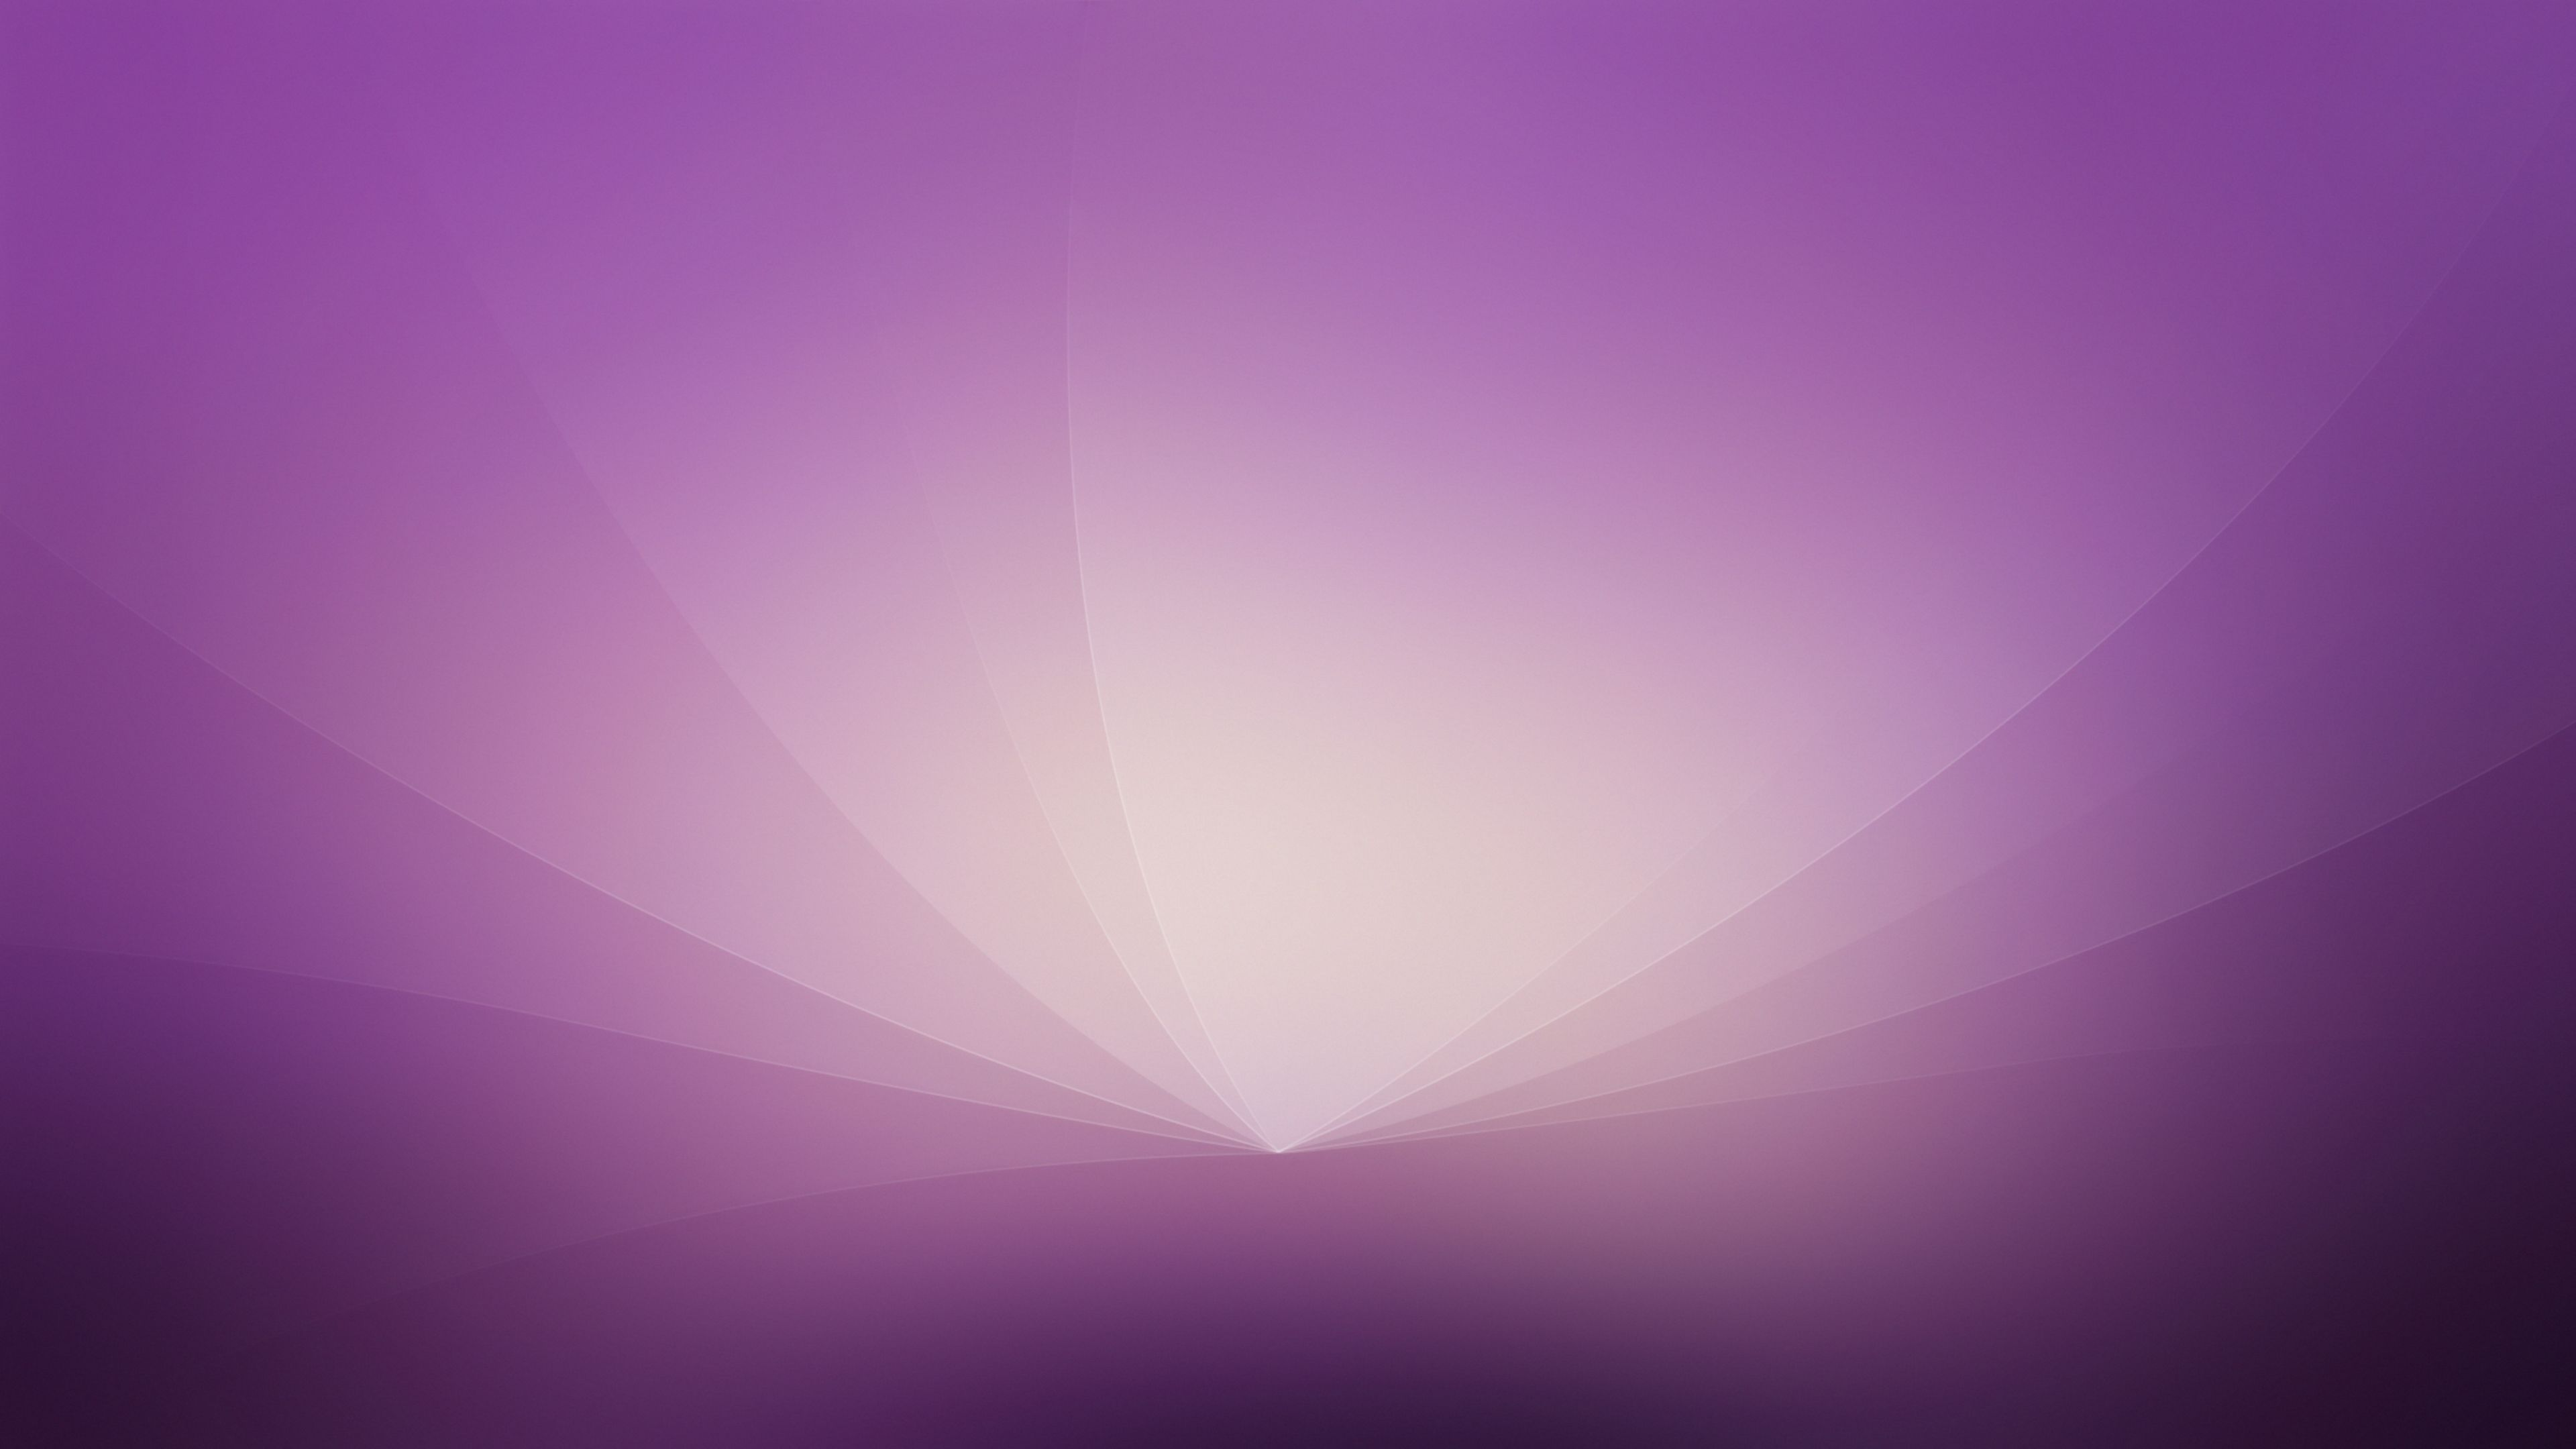 Clean 4k Wallpapers Top Free Clean 4k Backgrounds